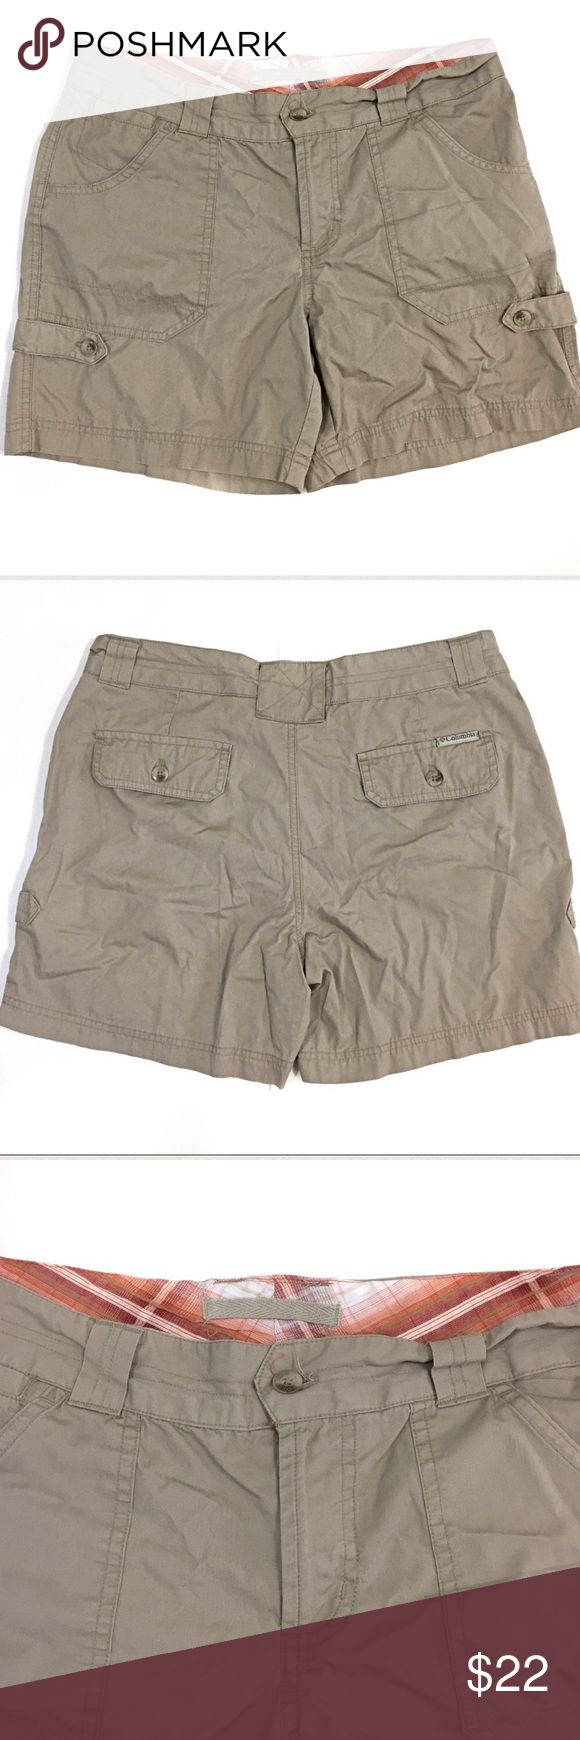 "Columbia Sportswear Tan Khaki Shorts Size 6 Columbia Sportswear shorts size 6.  Inseam 6"", waist flat across approx. 15.5""  Button and zipper closure.  Multiple pockets.  100% cotton. Columbia Shorts Cargos"